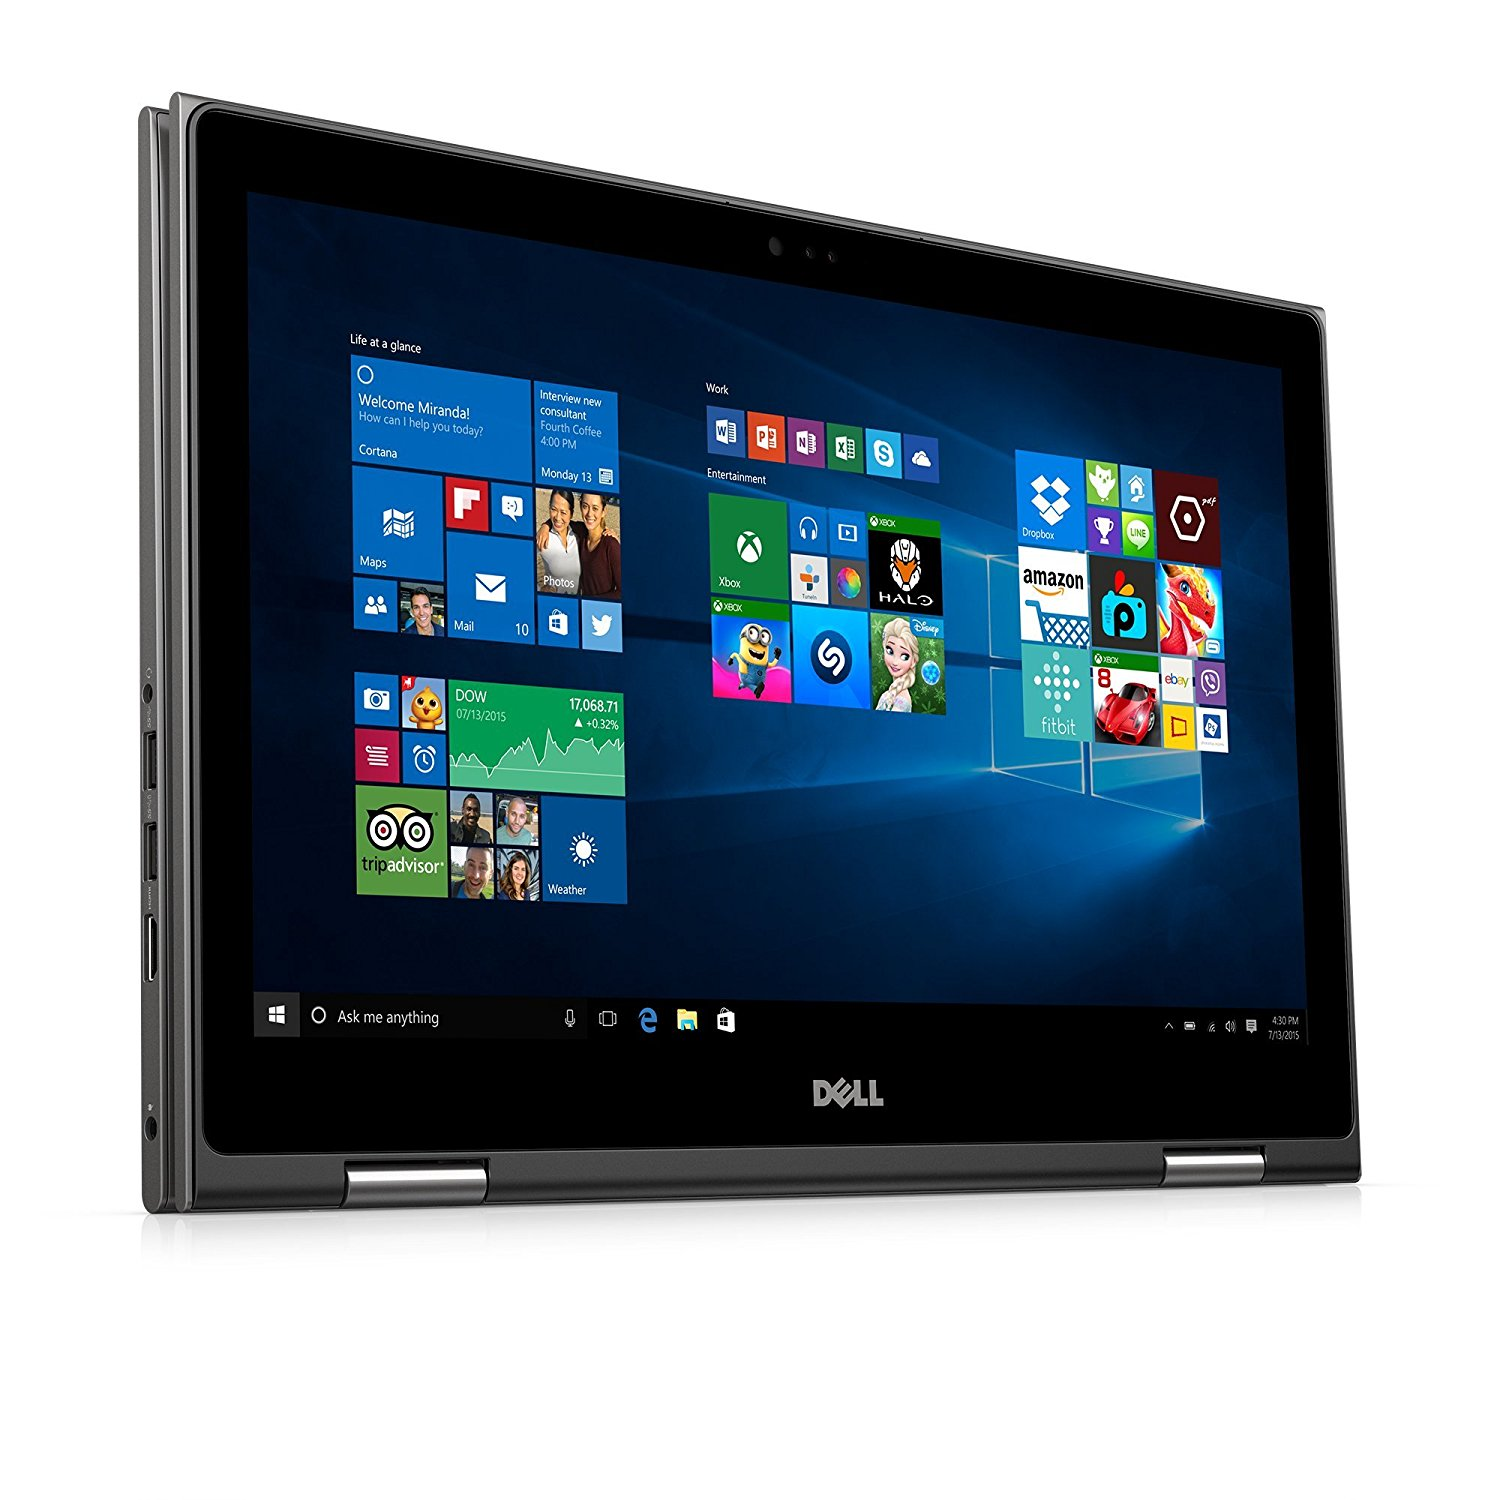 Dell Inspiron 15 5568 giá rẻ